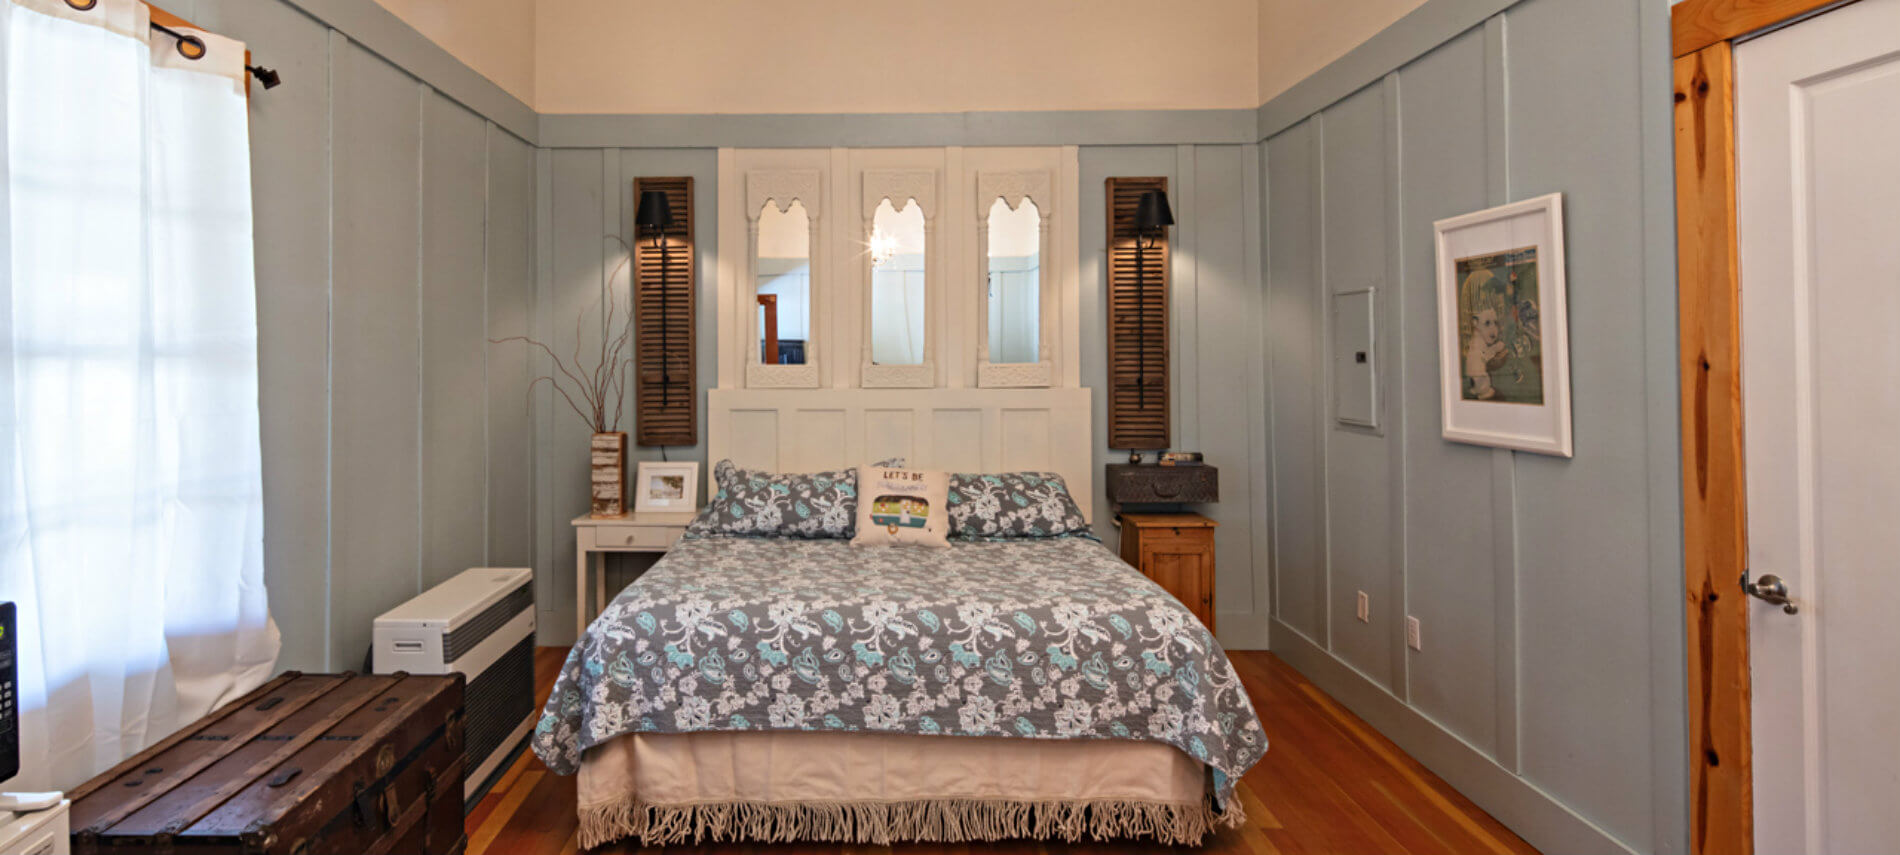 Large bed made up in a blue and grey patterned spread with a white wood and mirror headboard in bedroom with blue wainscoting.